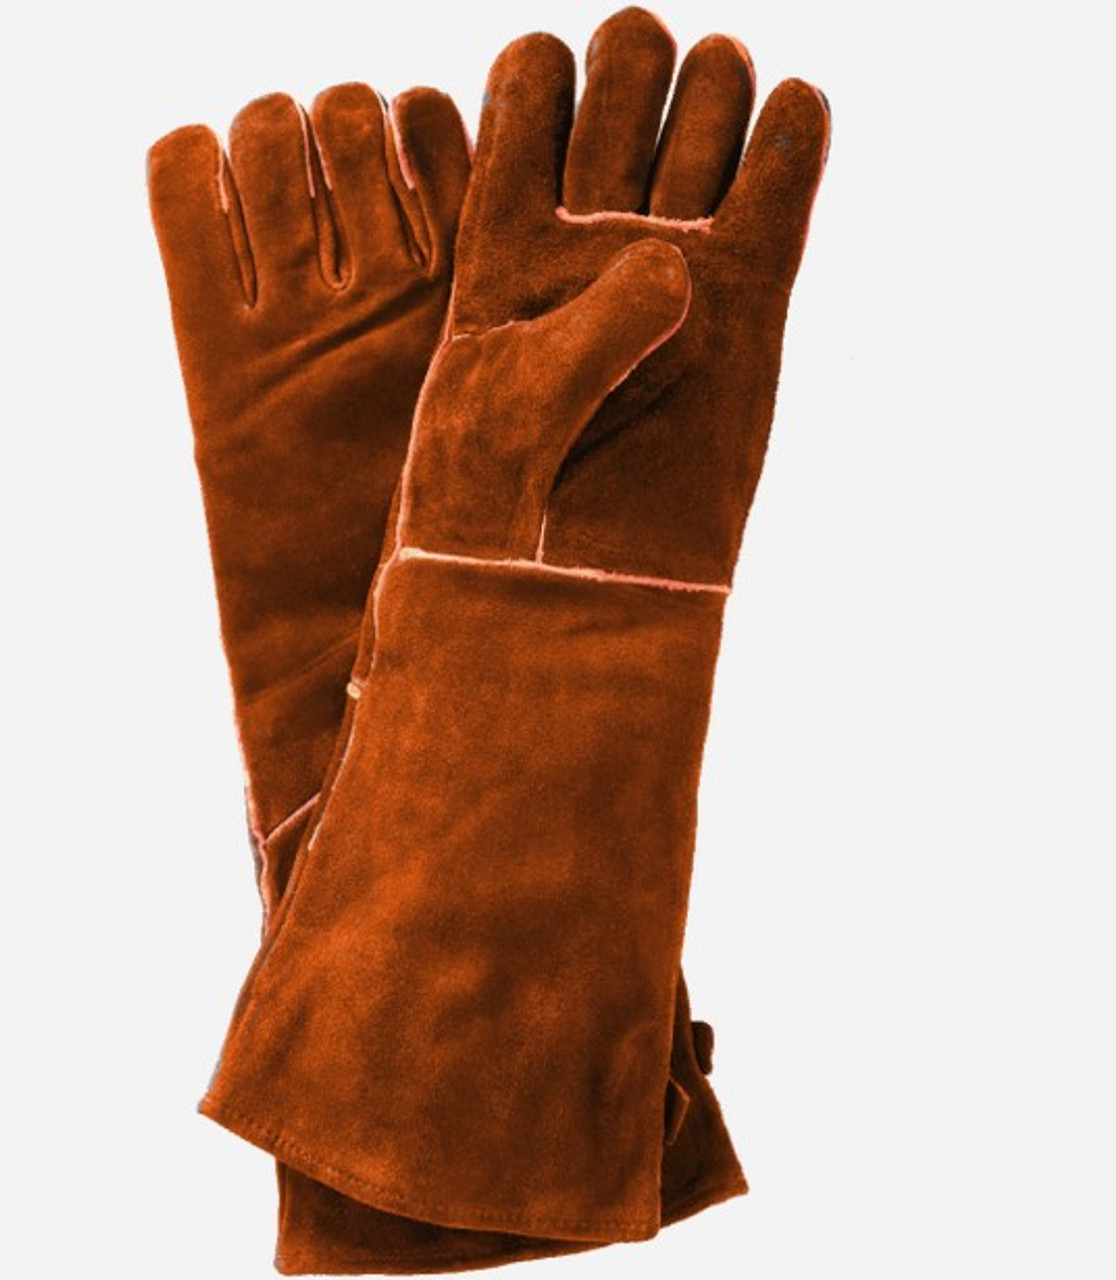 Jotul Long Arm Stove Gloves